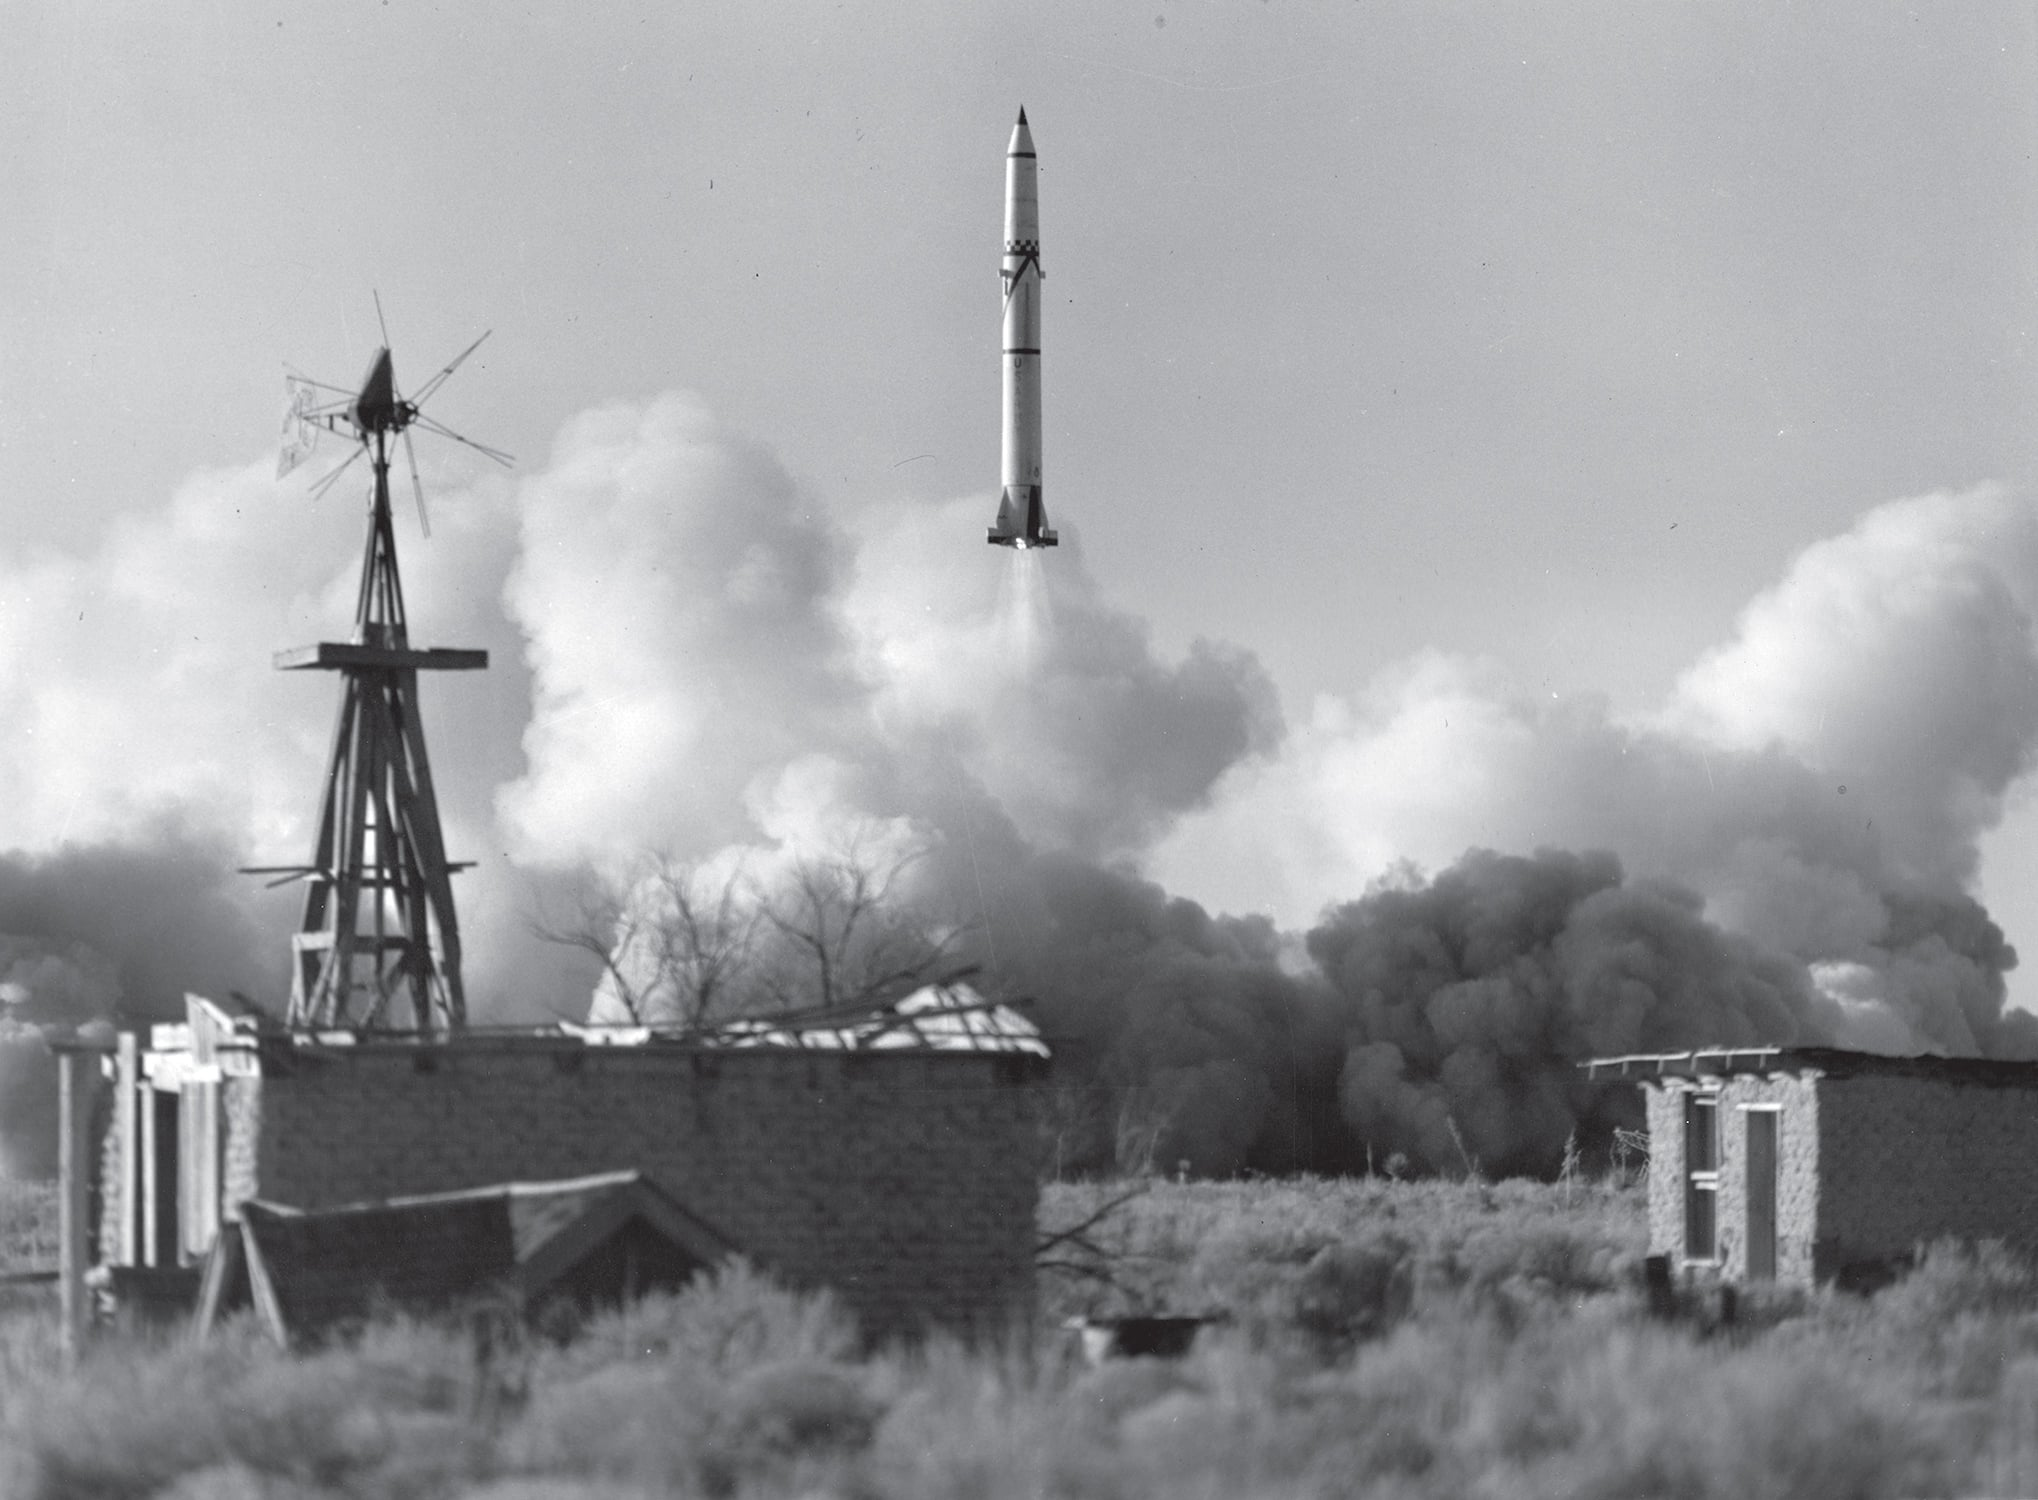 Home on the Range: From Ranches to Rockets